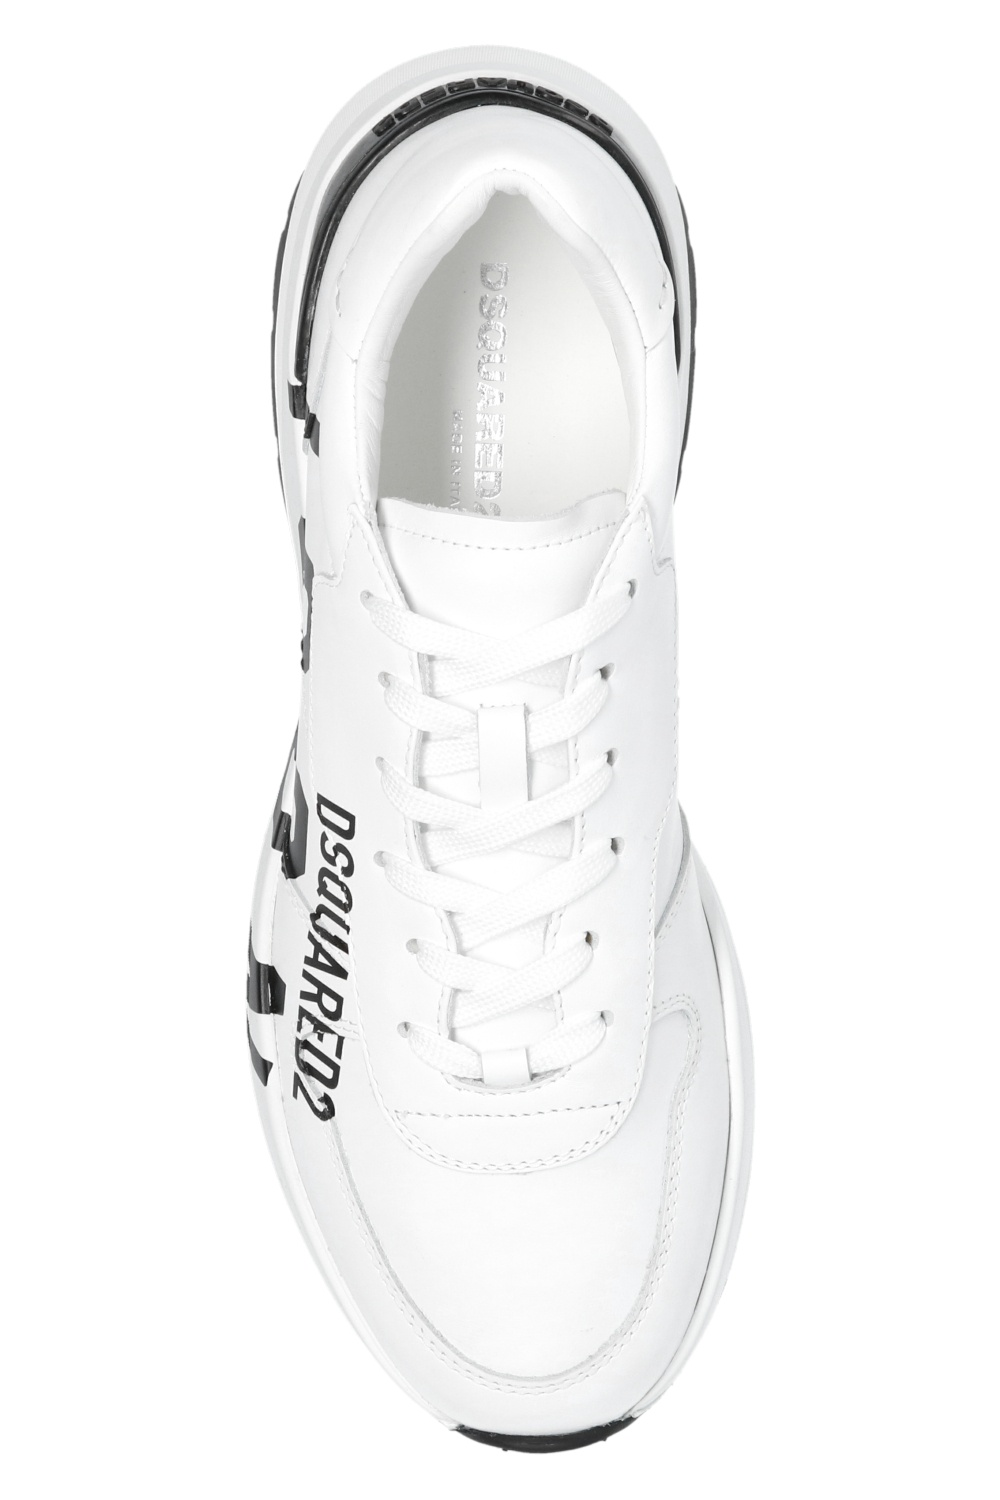 Dsquared2 'D24' sneakers